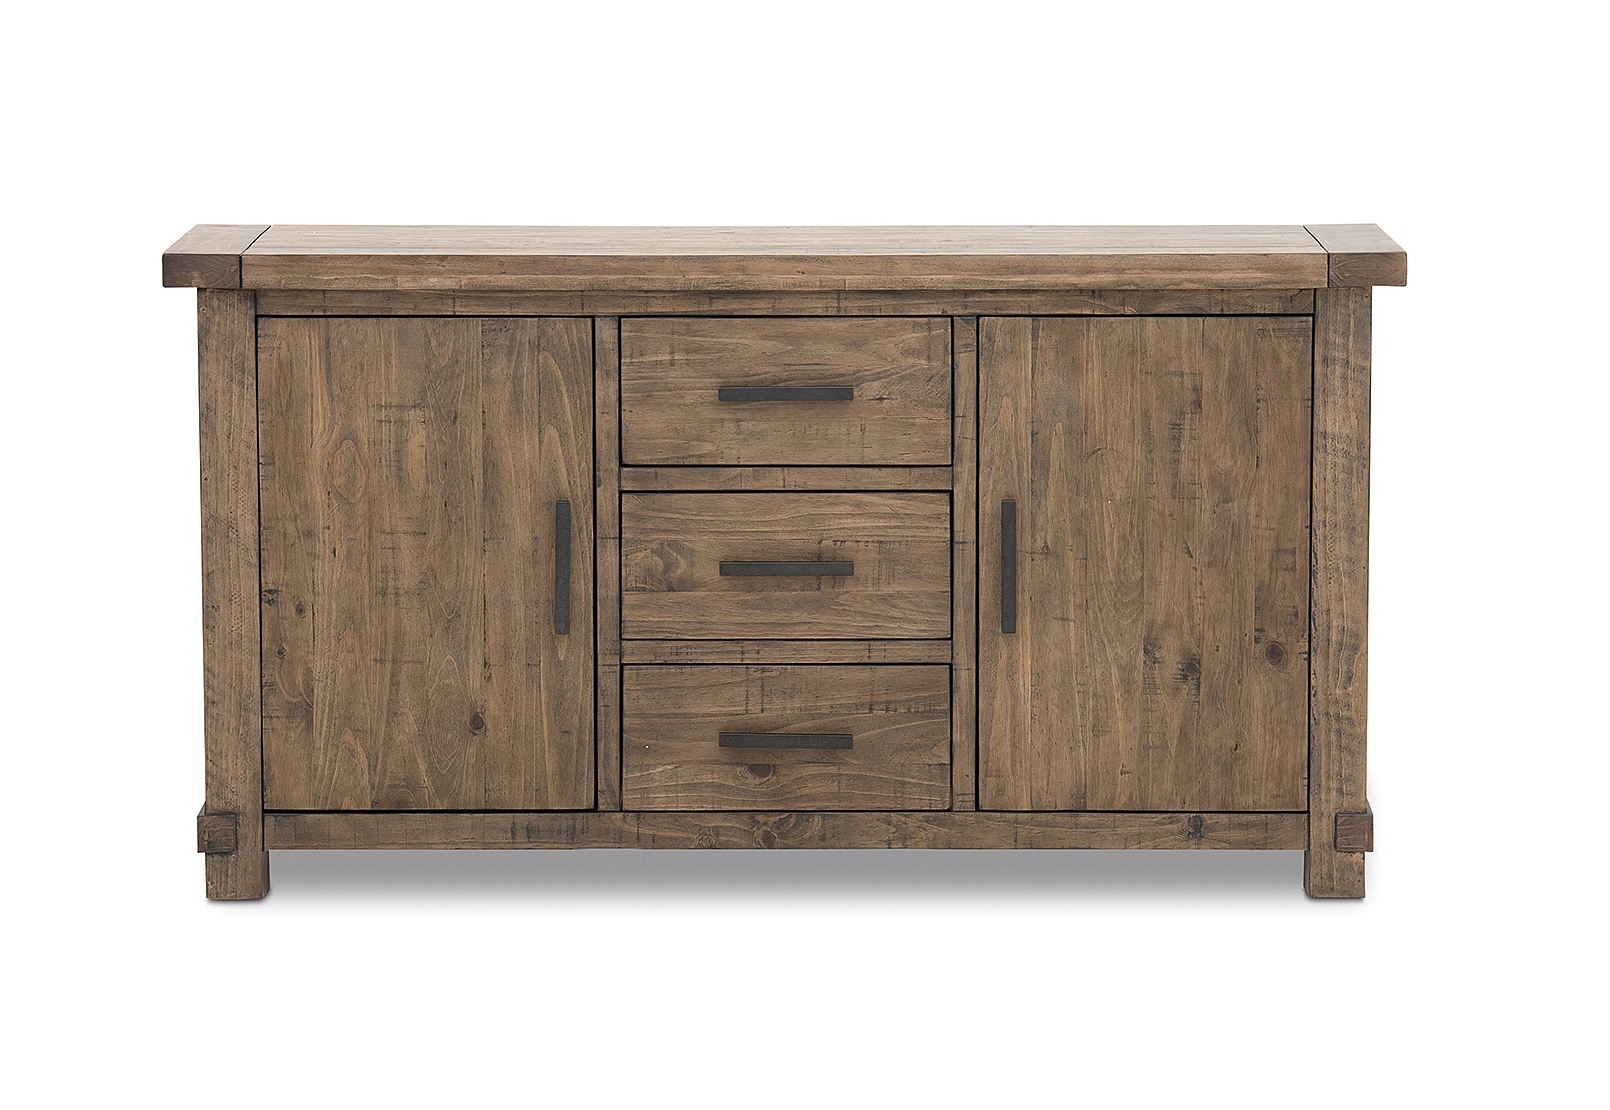 Buffet Tables & Sideboards | Amart Furniture With Regard To Rutherford Sideboards (View 5 of 20)